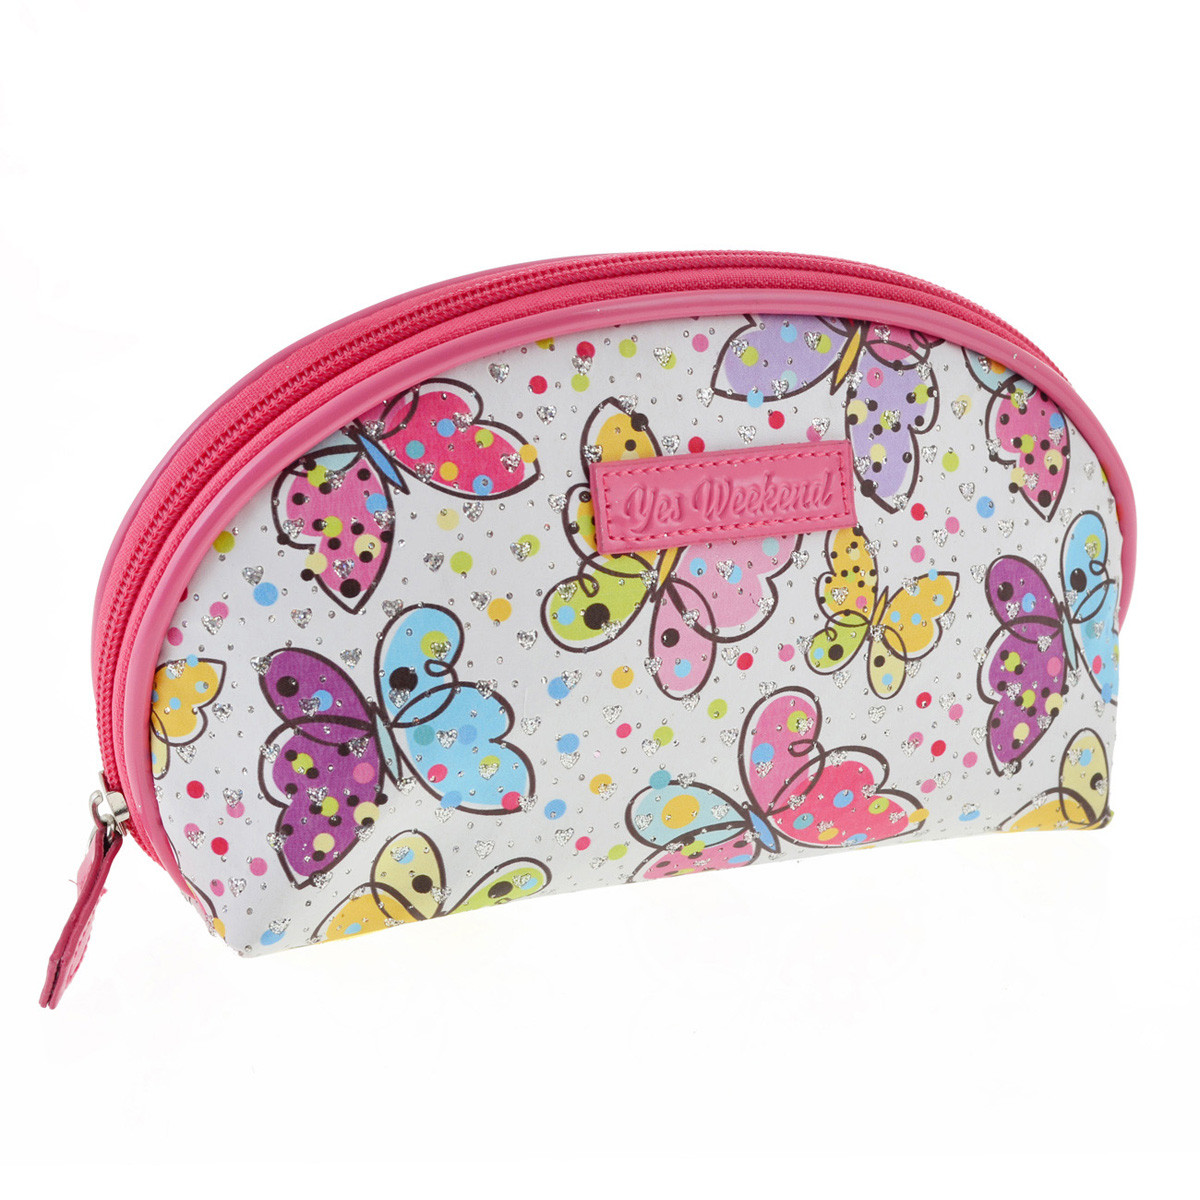 Косметичка YES YW-34 Butterflies код: 532644